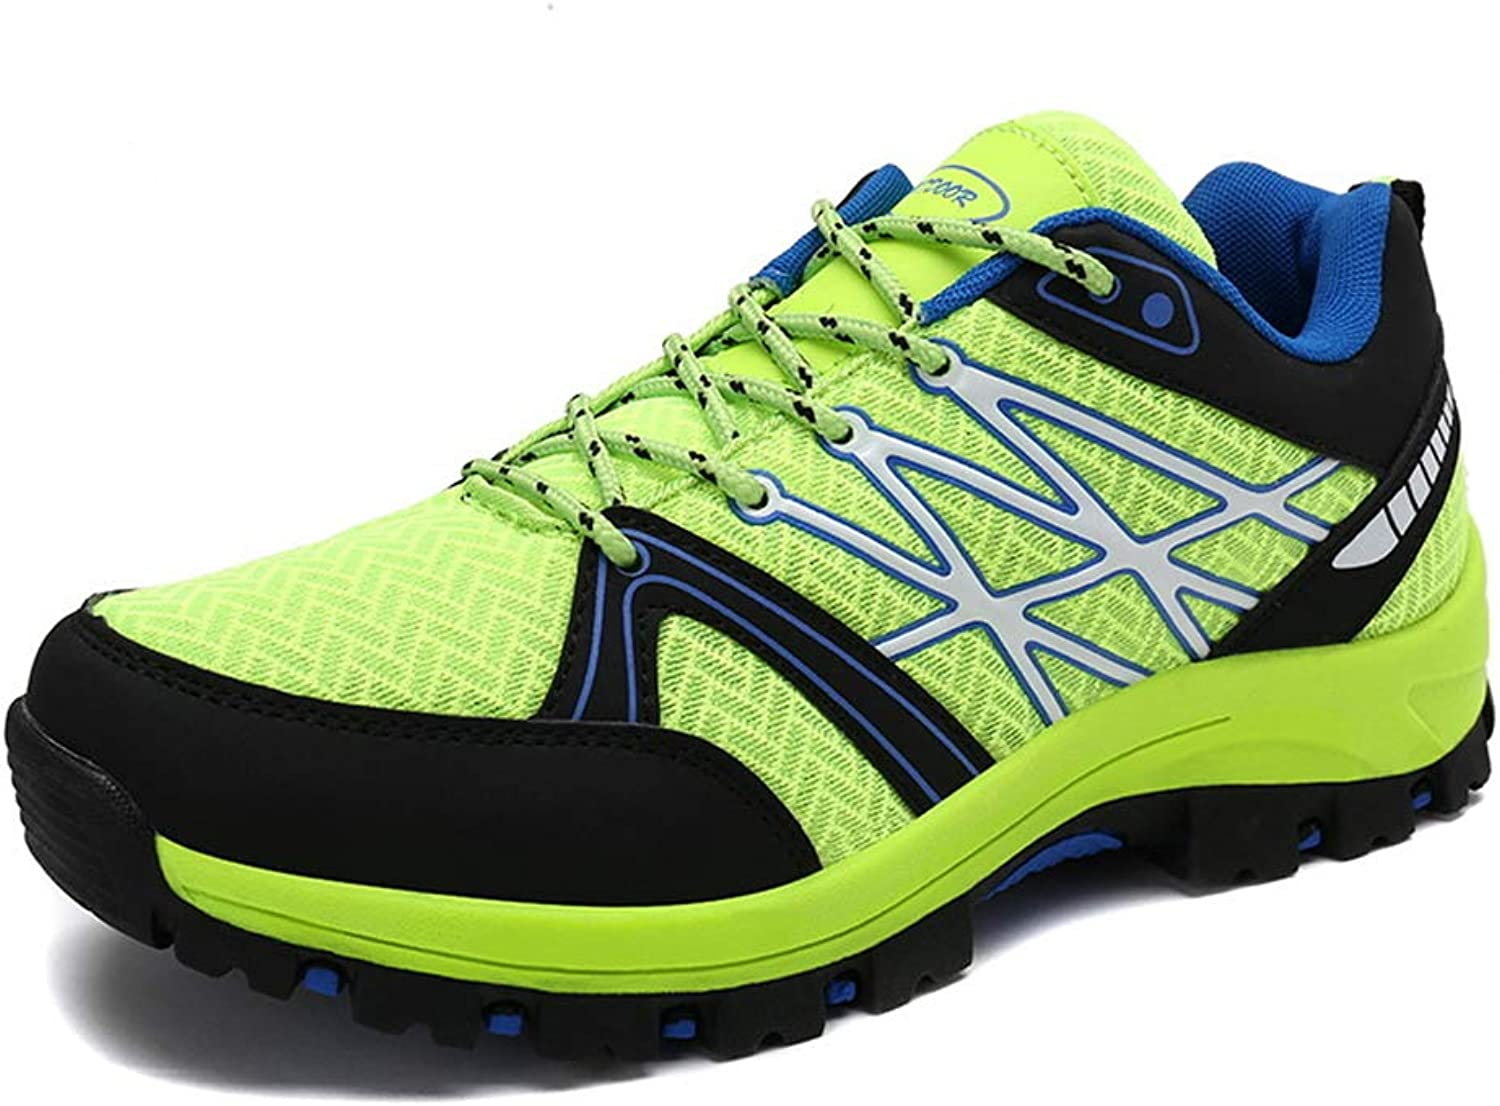 ZFLIN Hiking shoes Lightweight Outdoor Large Size Hiking Leisure Sports shoes-green-43